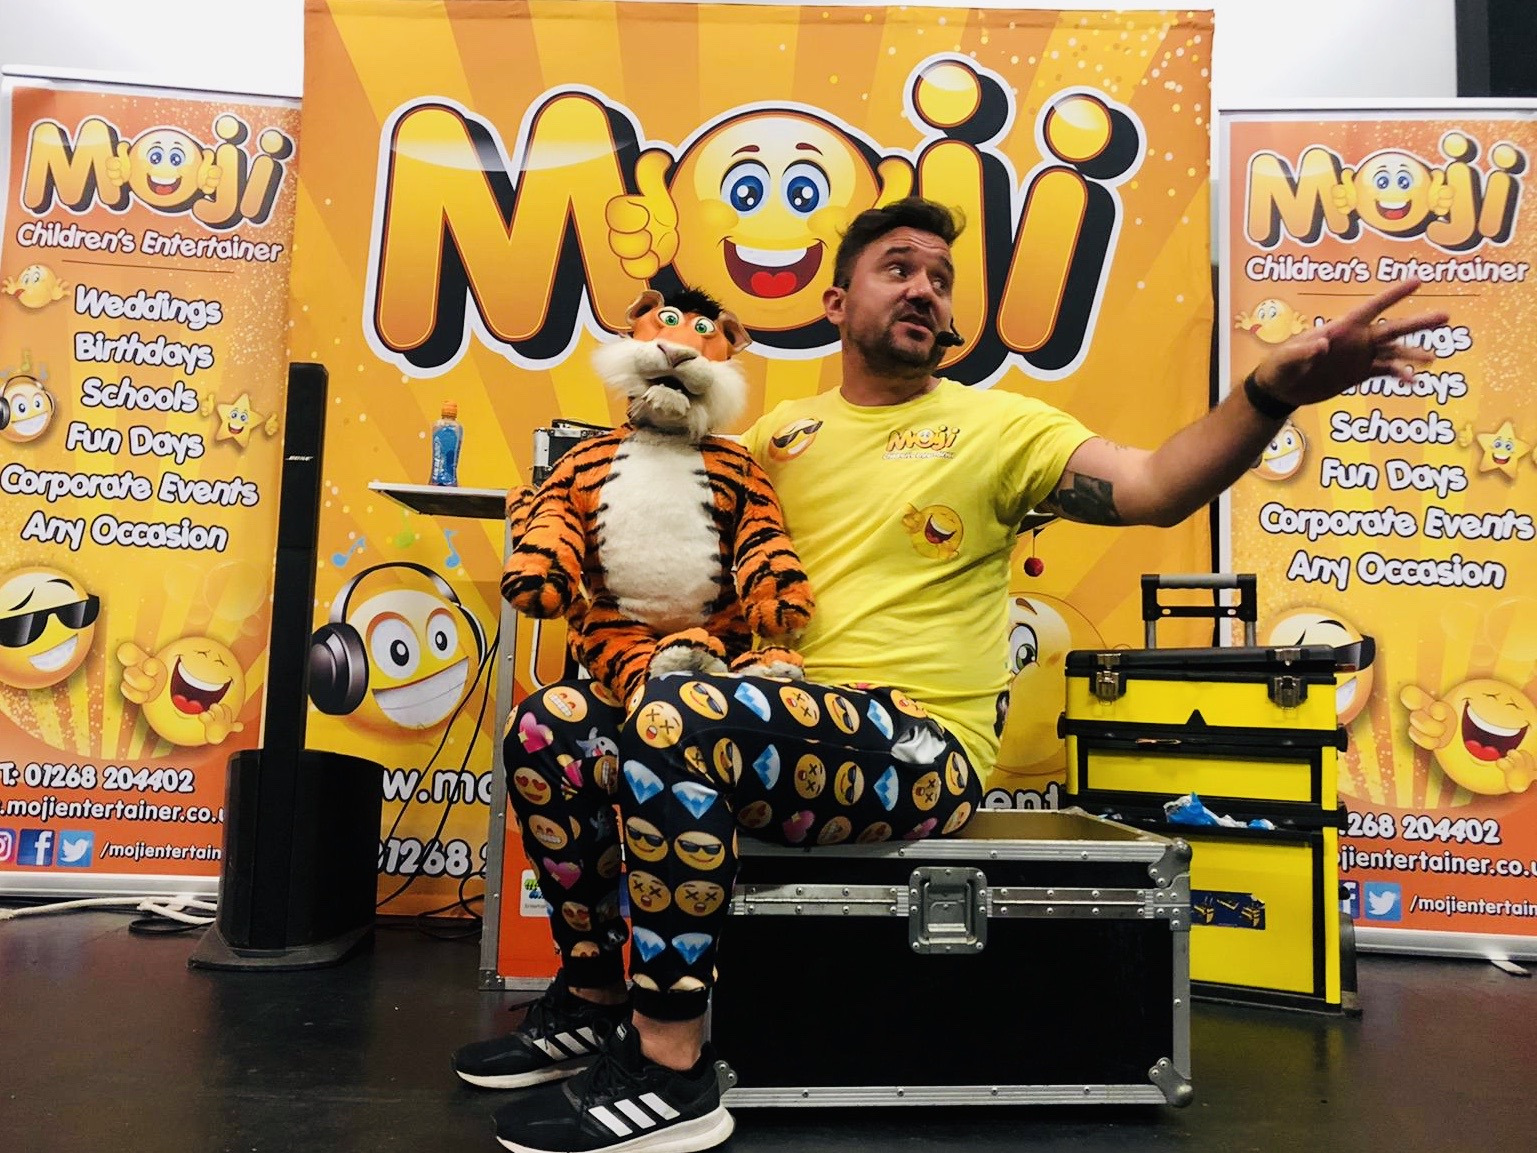 Moji Children's Entertainer Essex2